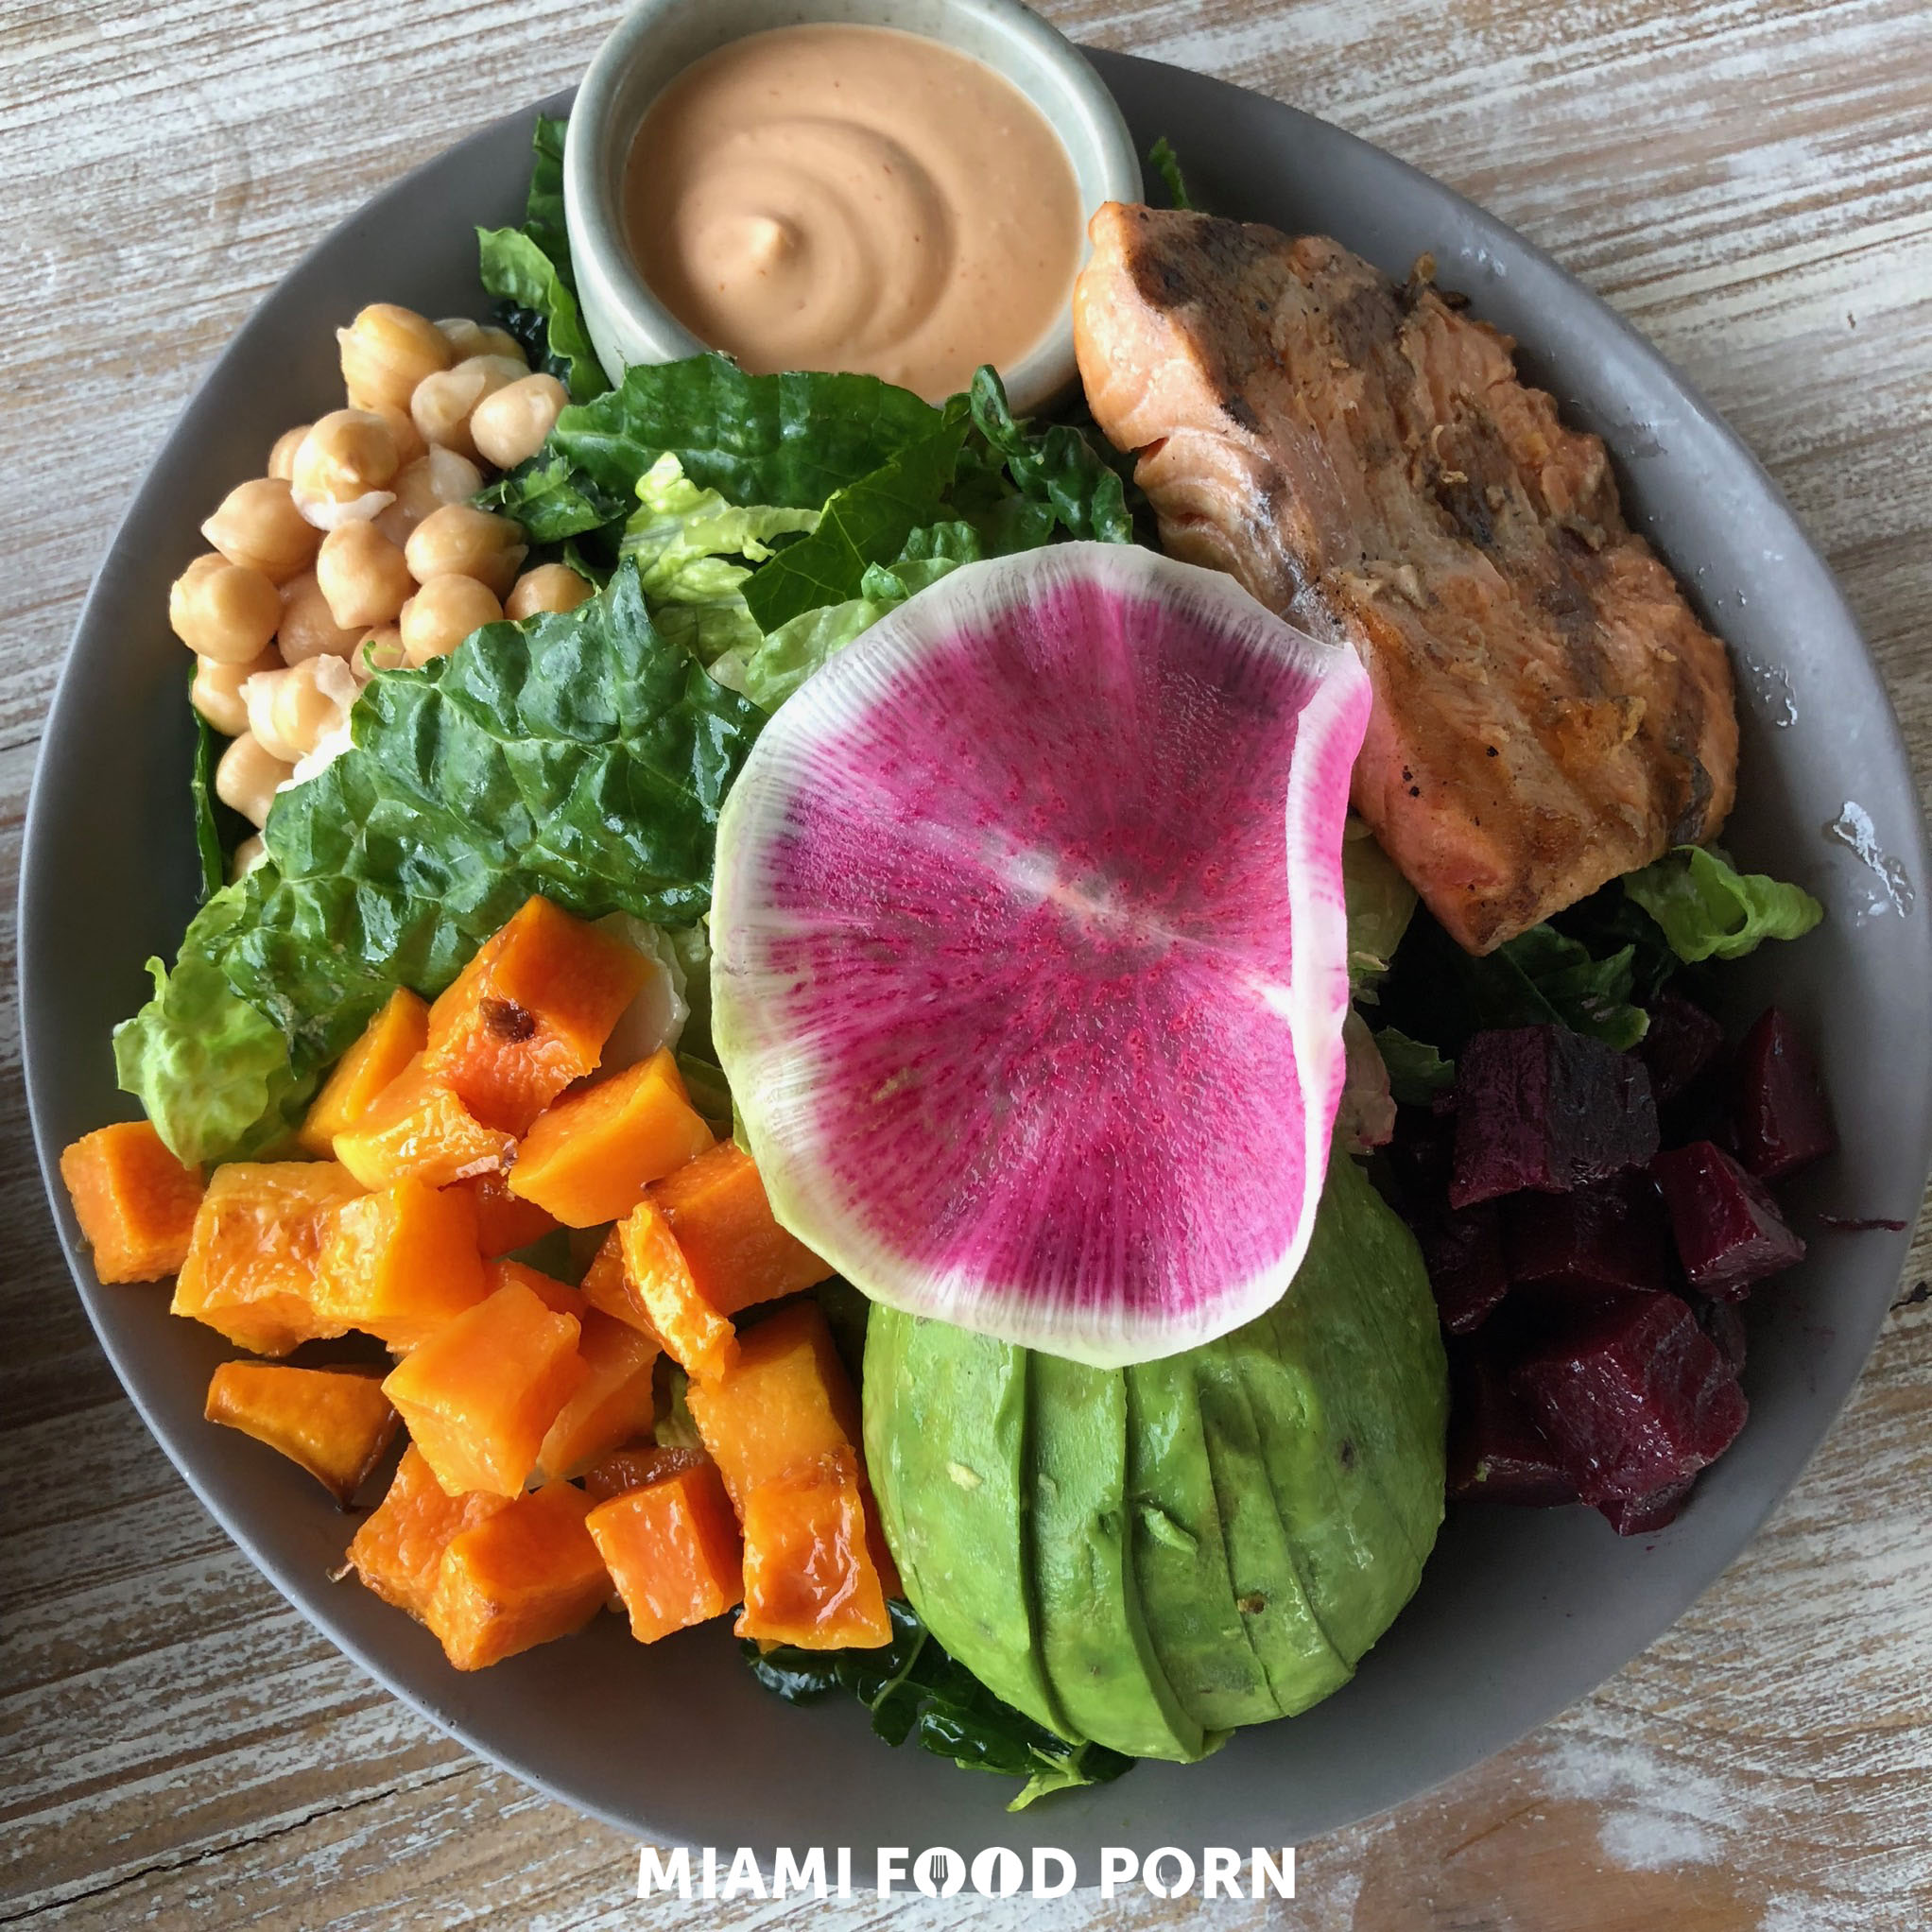 Vegan Chop: Kale, romaine, butternut squash, purple beet, avocado, garbanzo beans, red wine vinaigrette